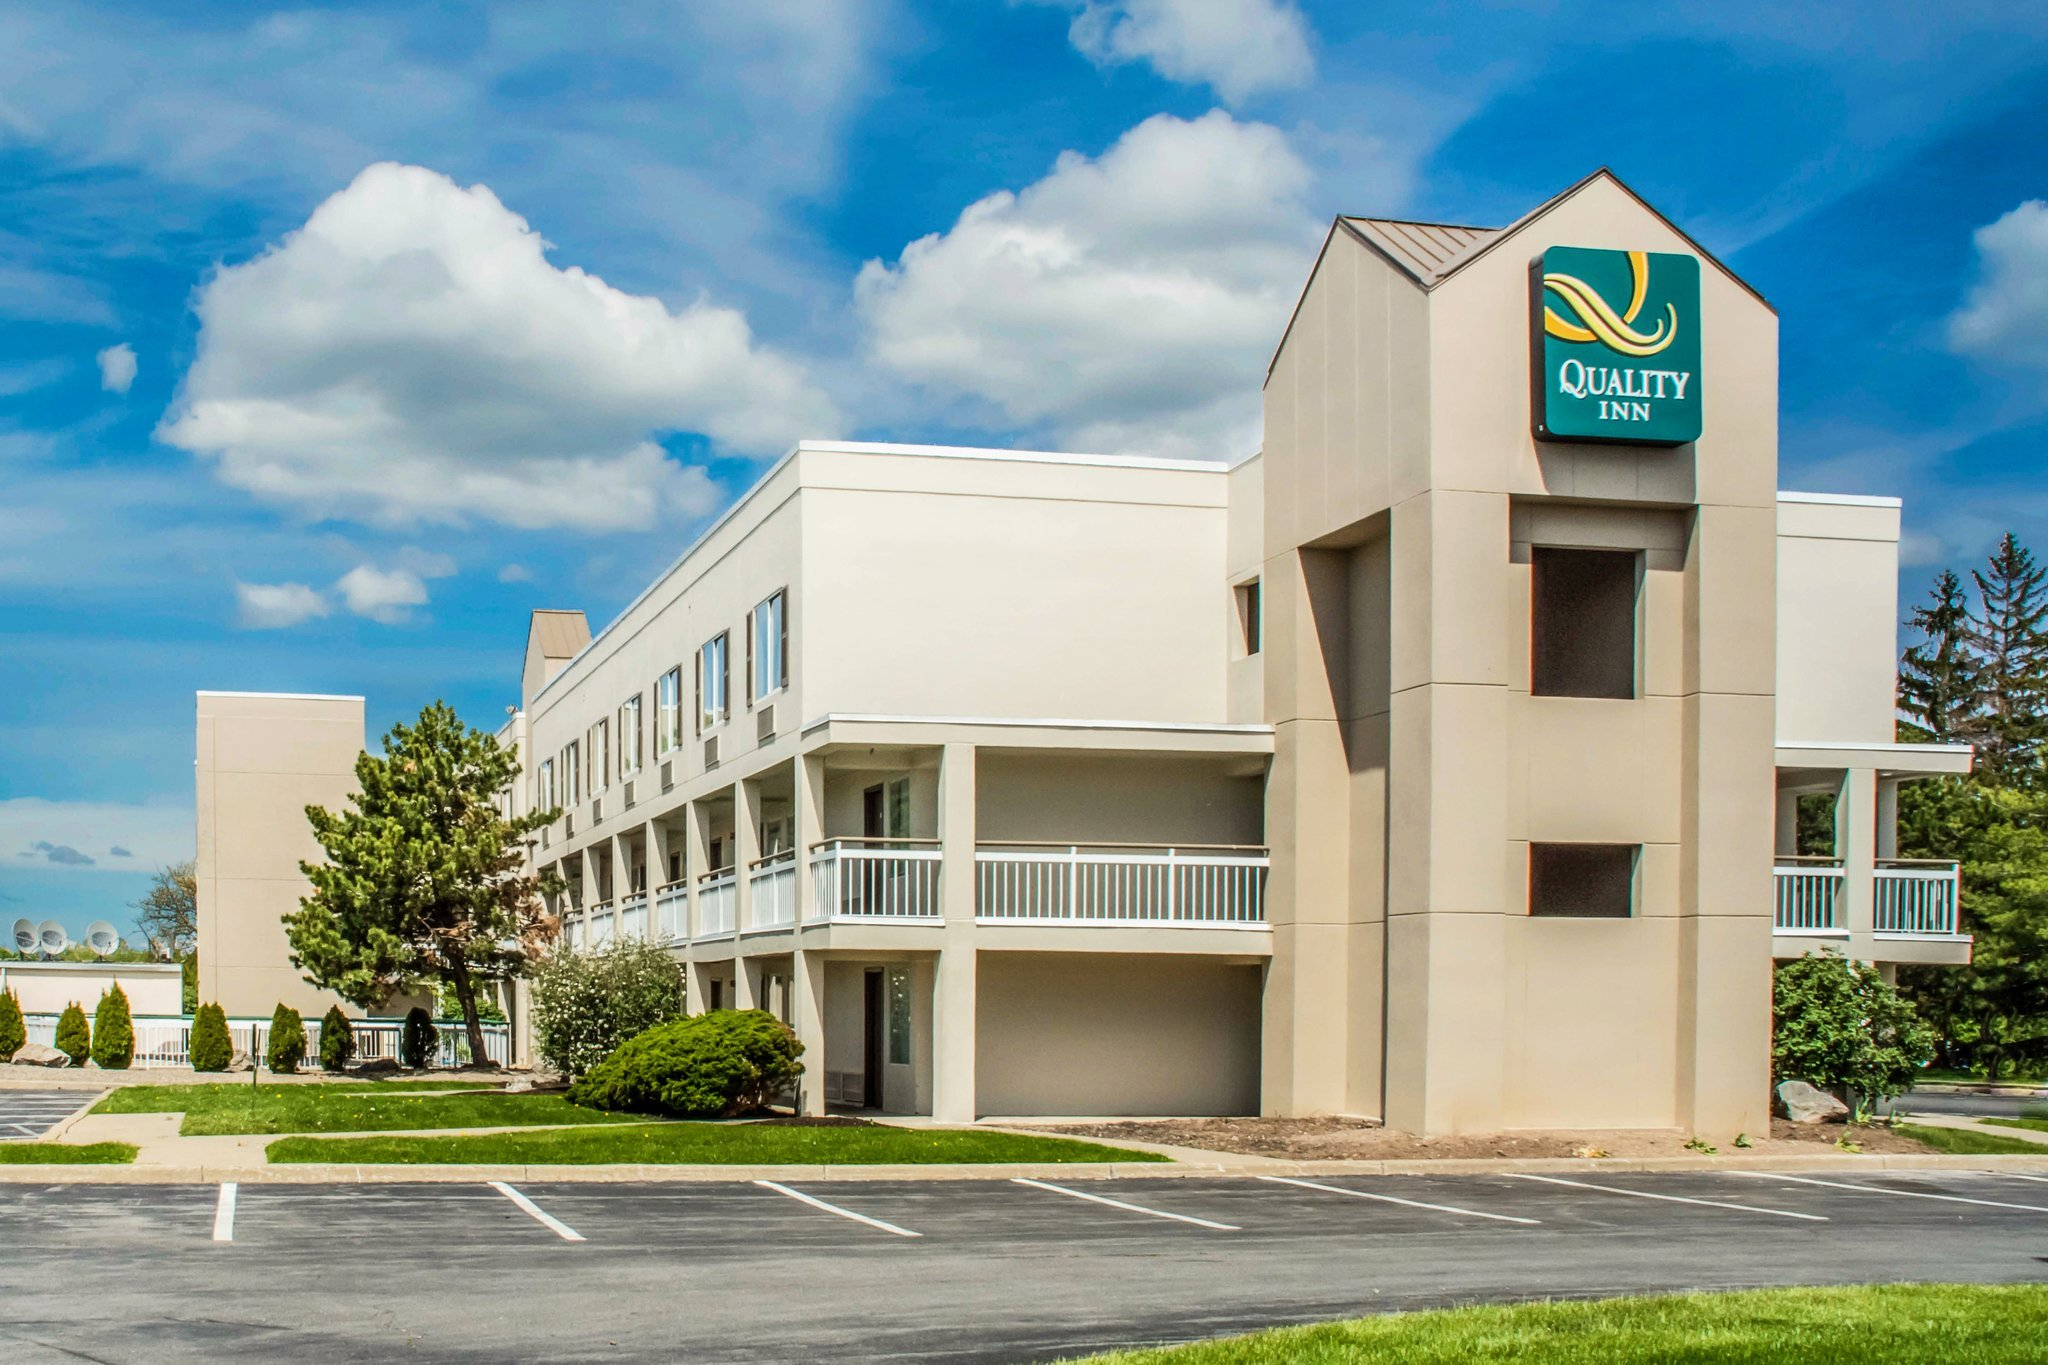 Hotel East Syracuse New York Hrs Hotels In East Syracuse New